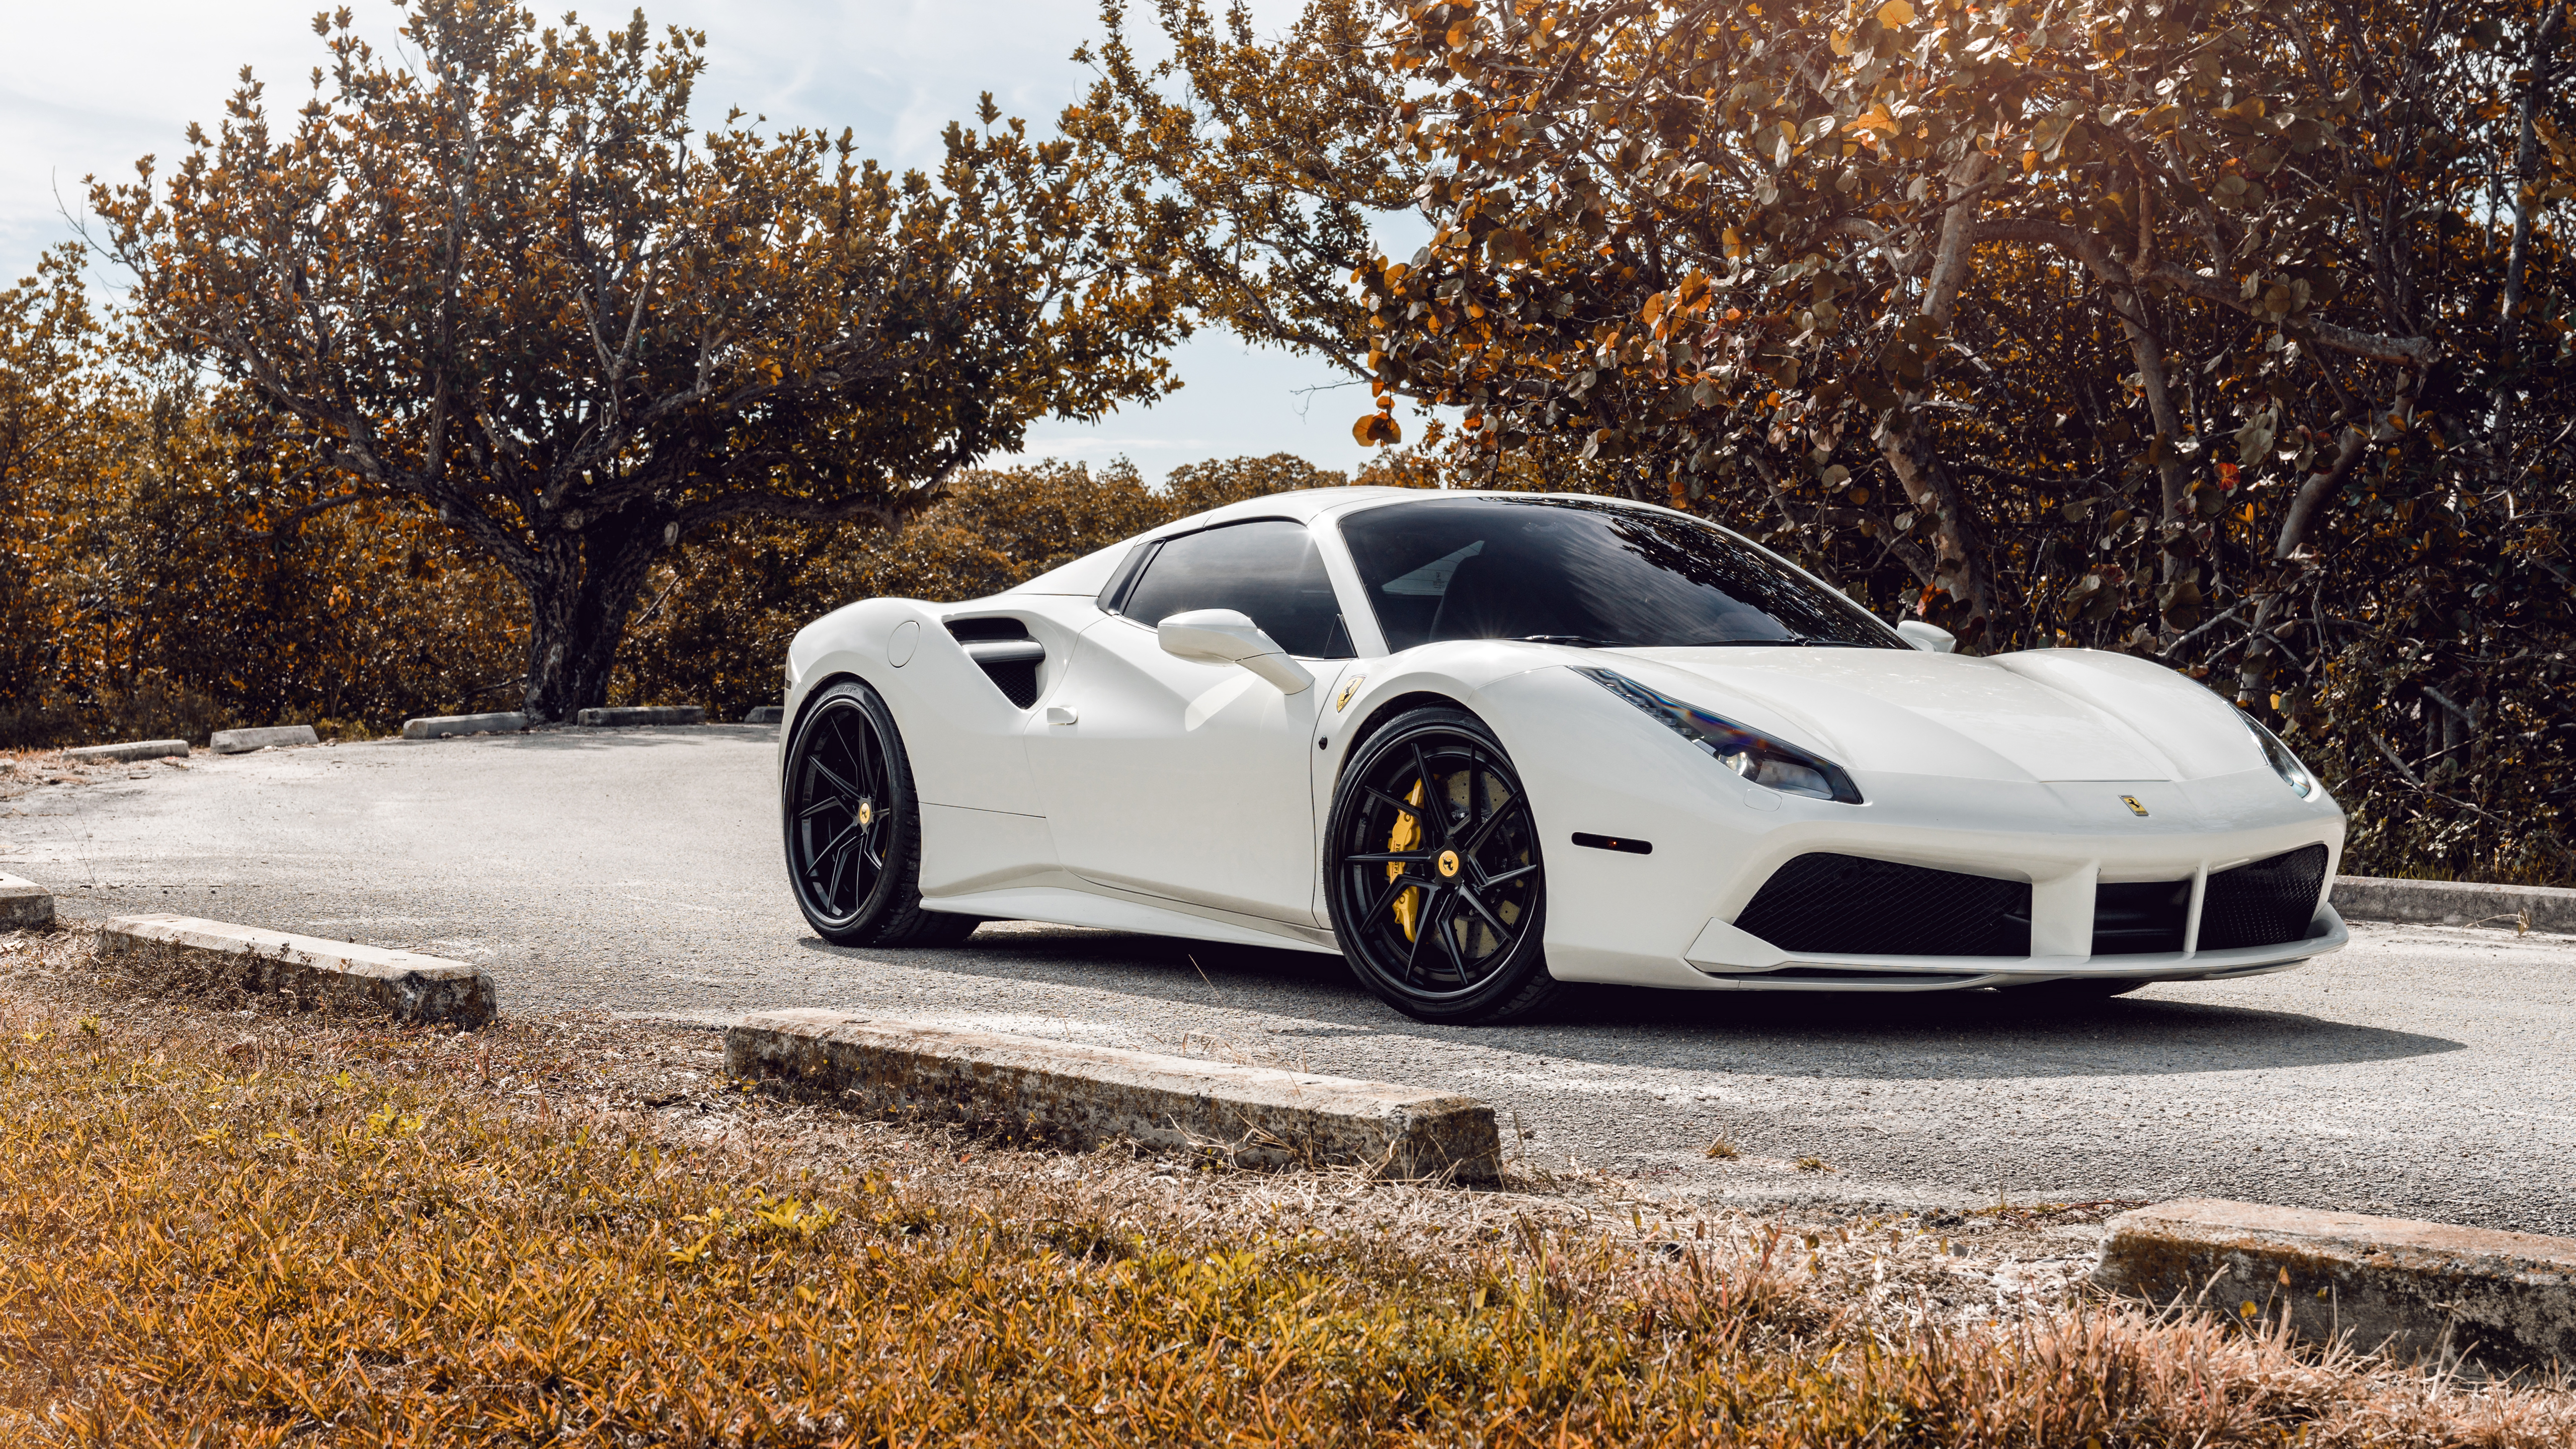 Ag White Ferrari 488 5k Wallpaper Hd Car Wallpapers Id 9795